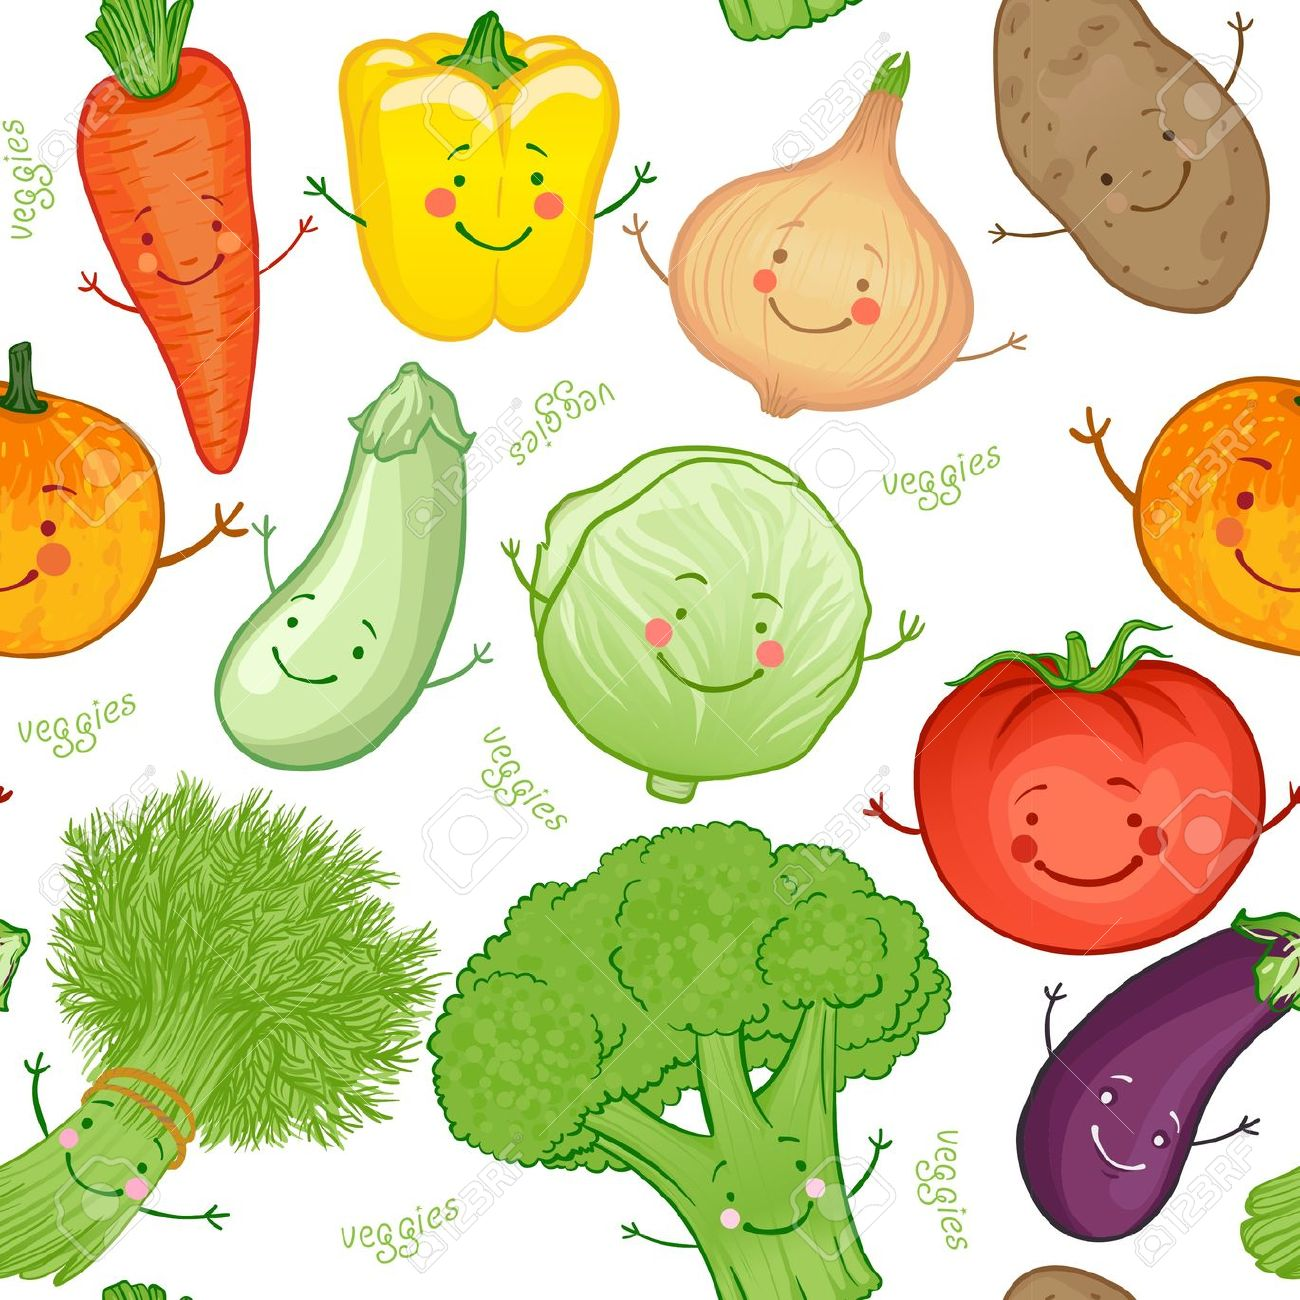 Vegetable clipart pop art Clipart Clipart 188 Vegetables Vegetables